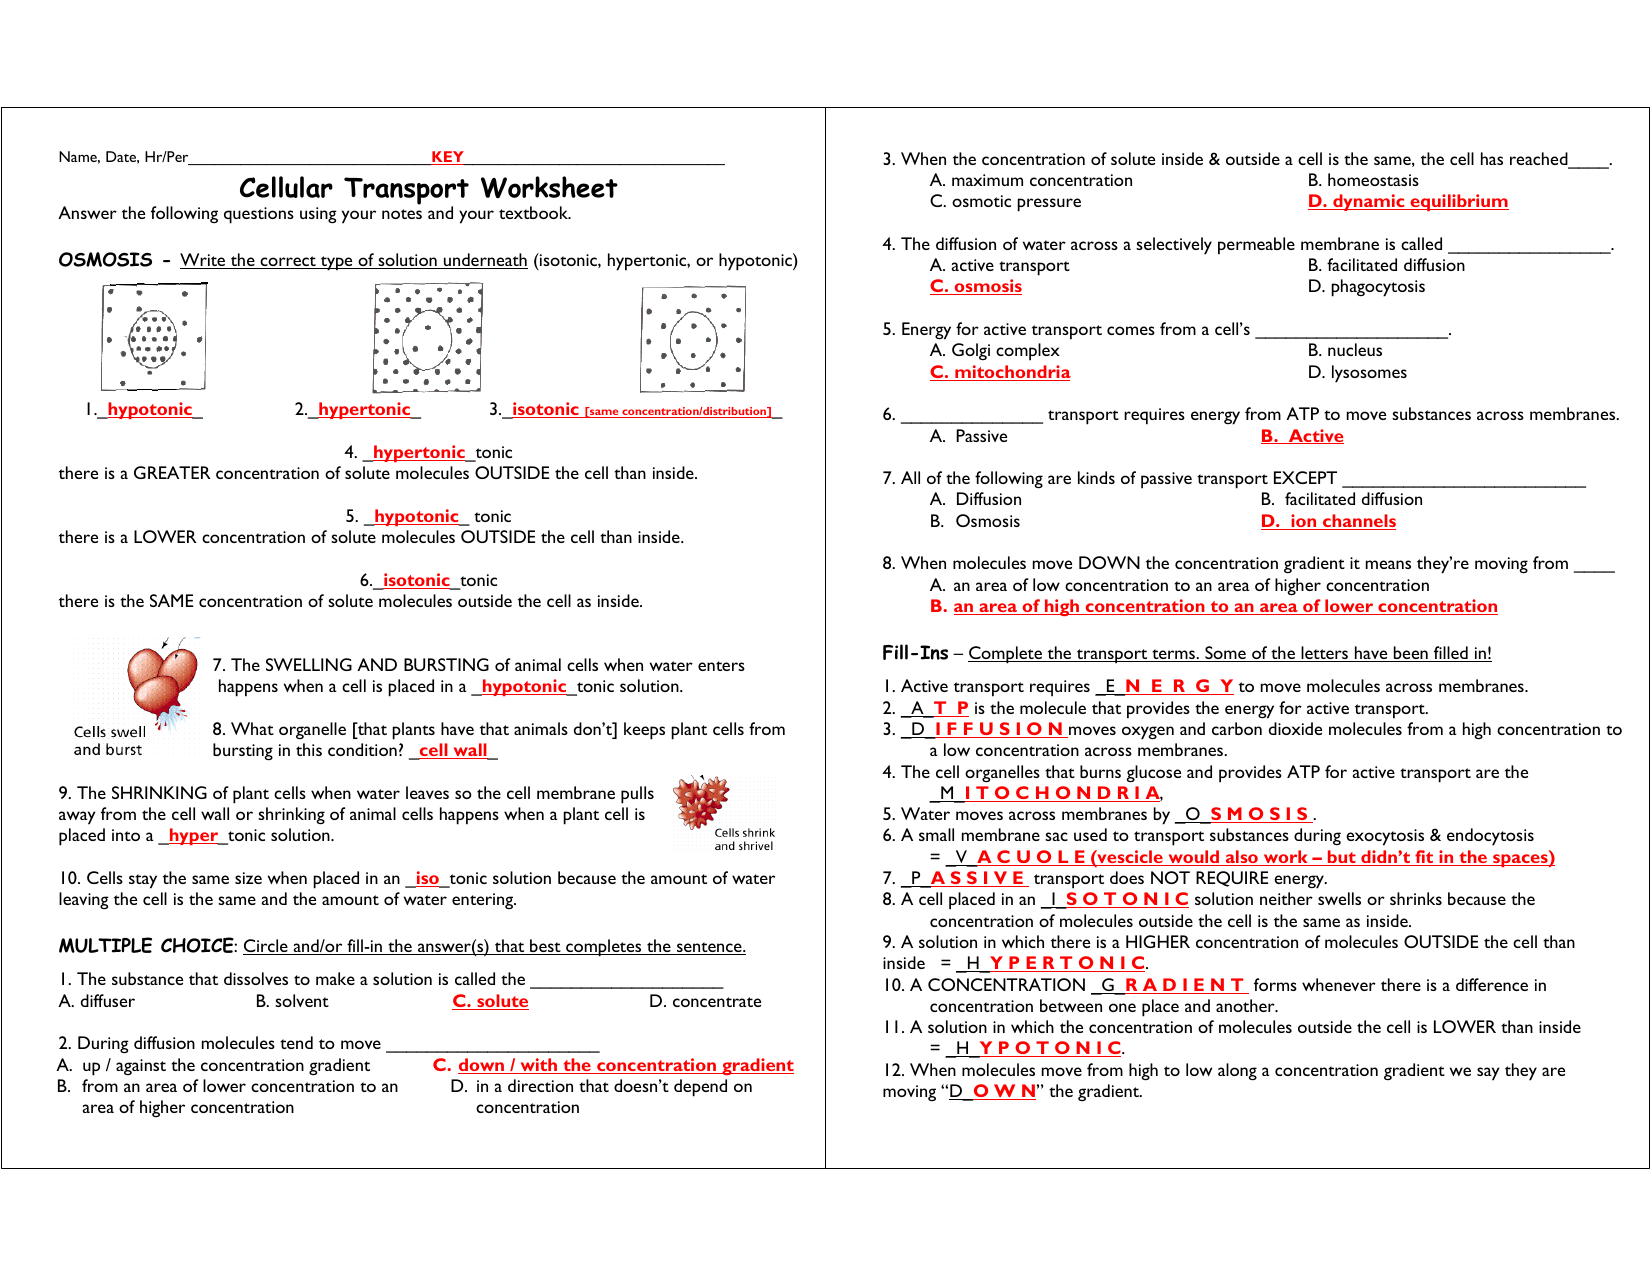 Cellular Transport Worksheet